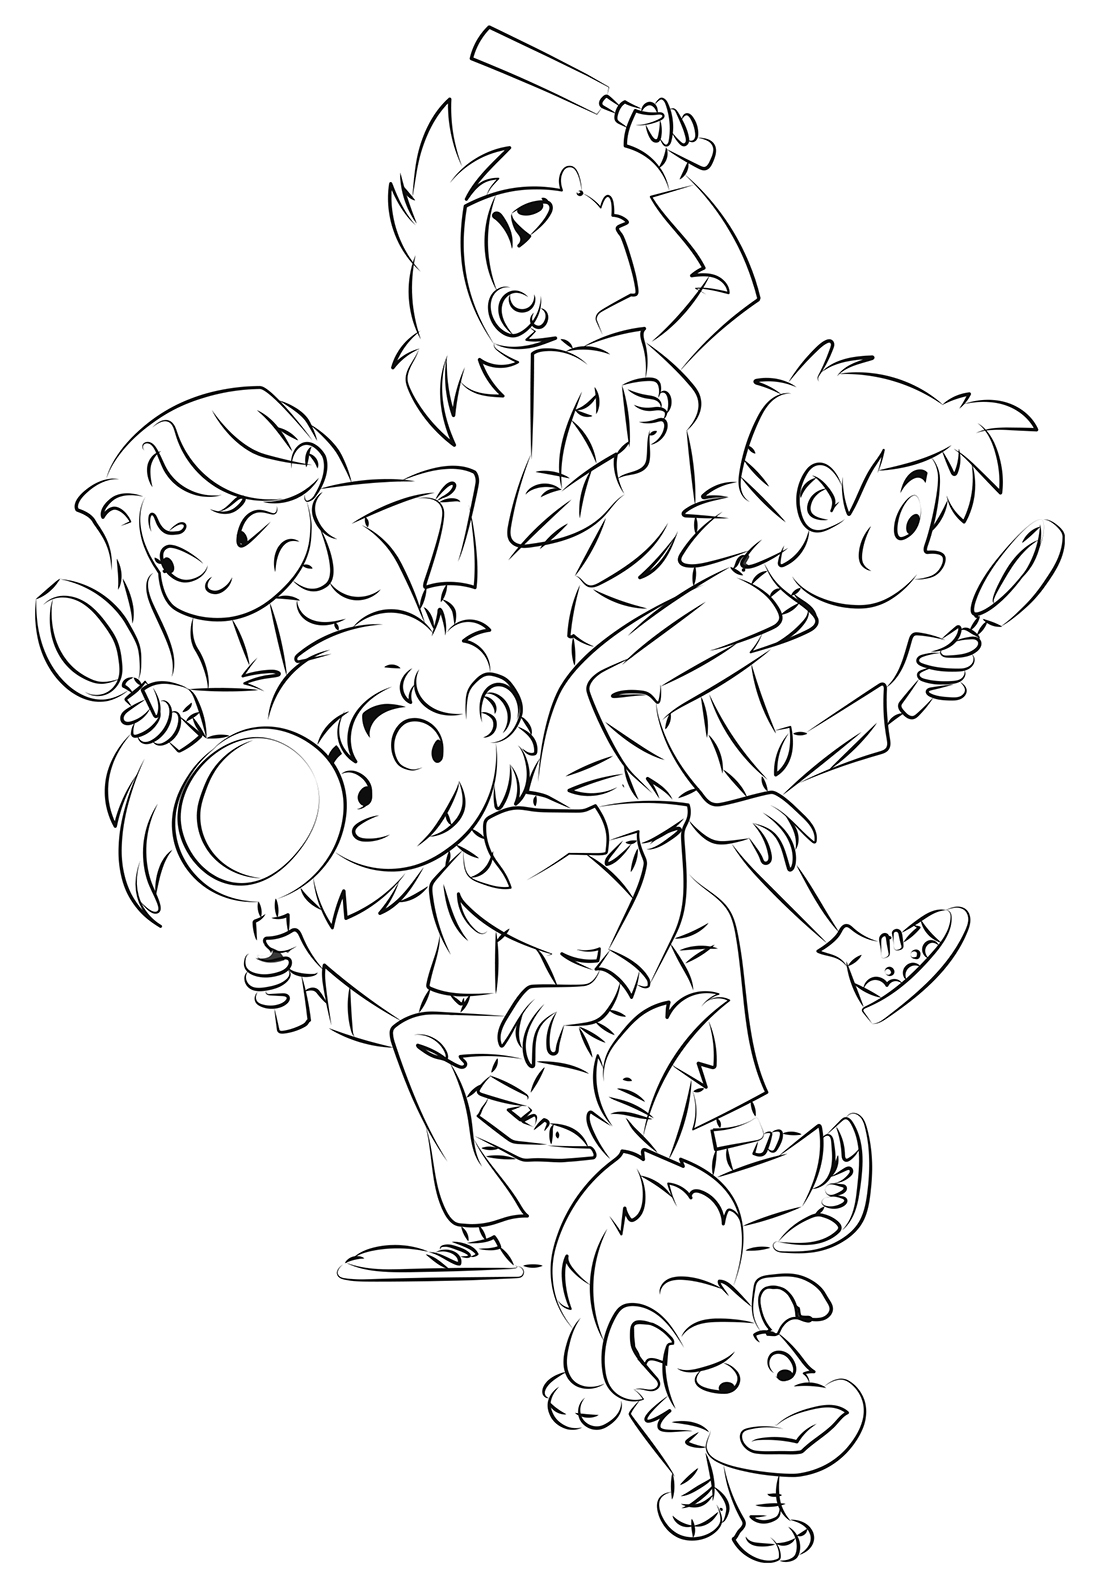 group of children with magnifying glasses. Coloring page